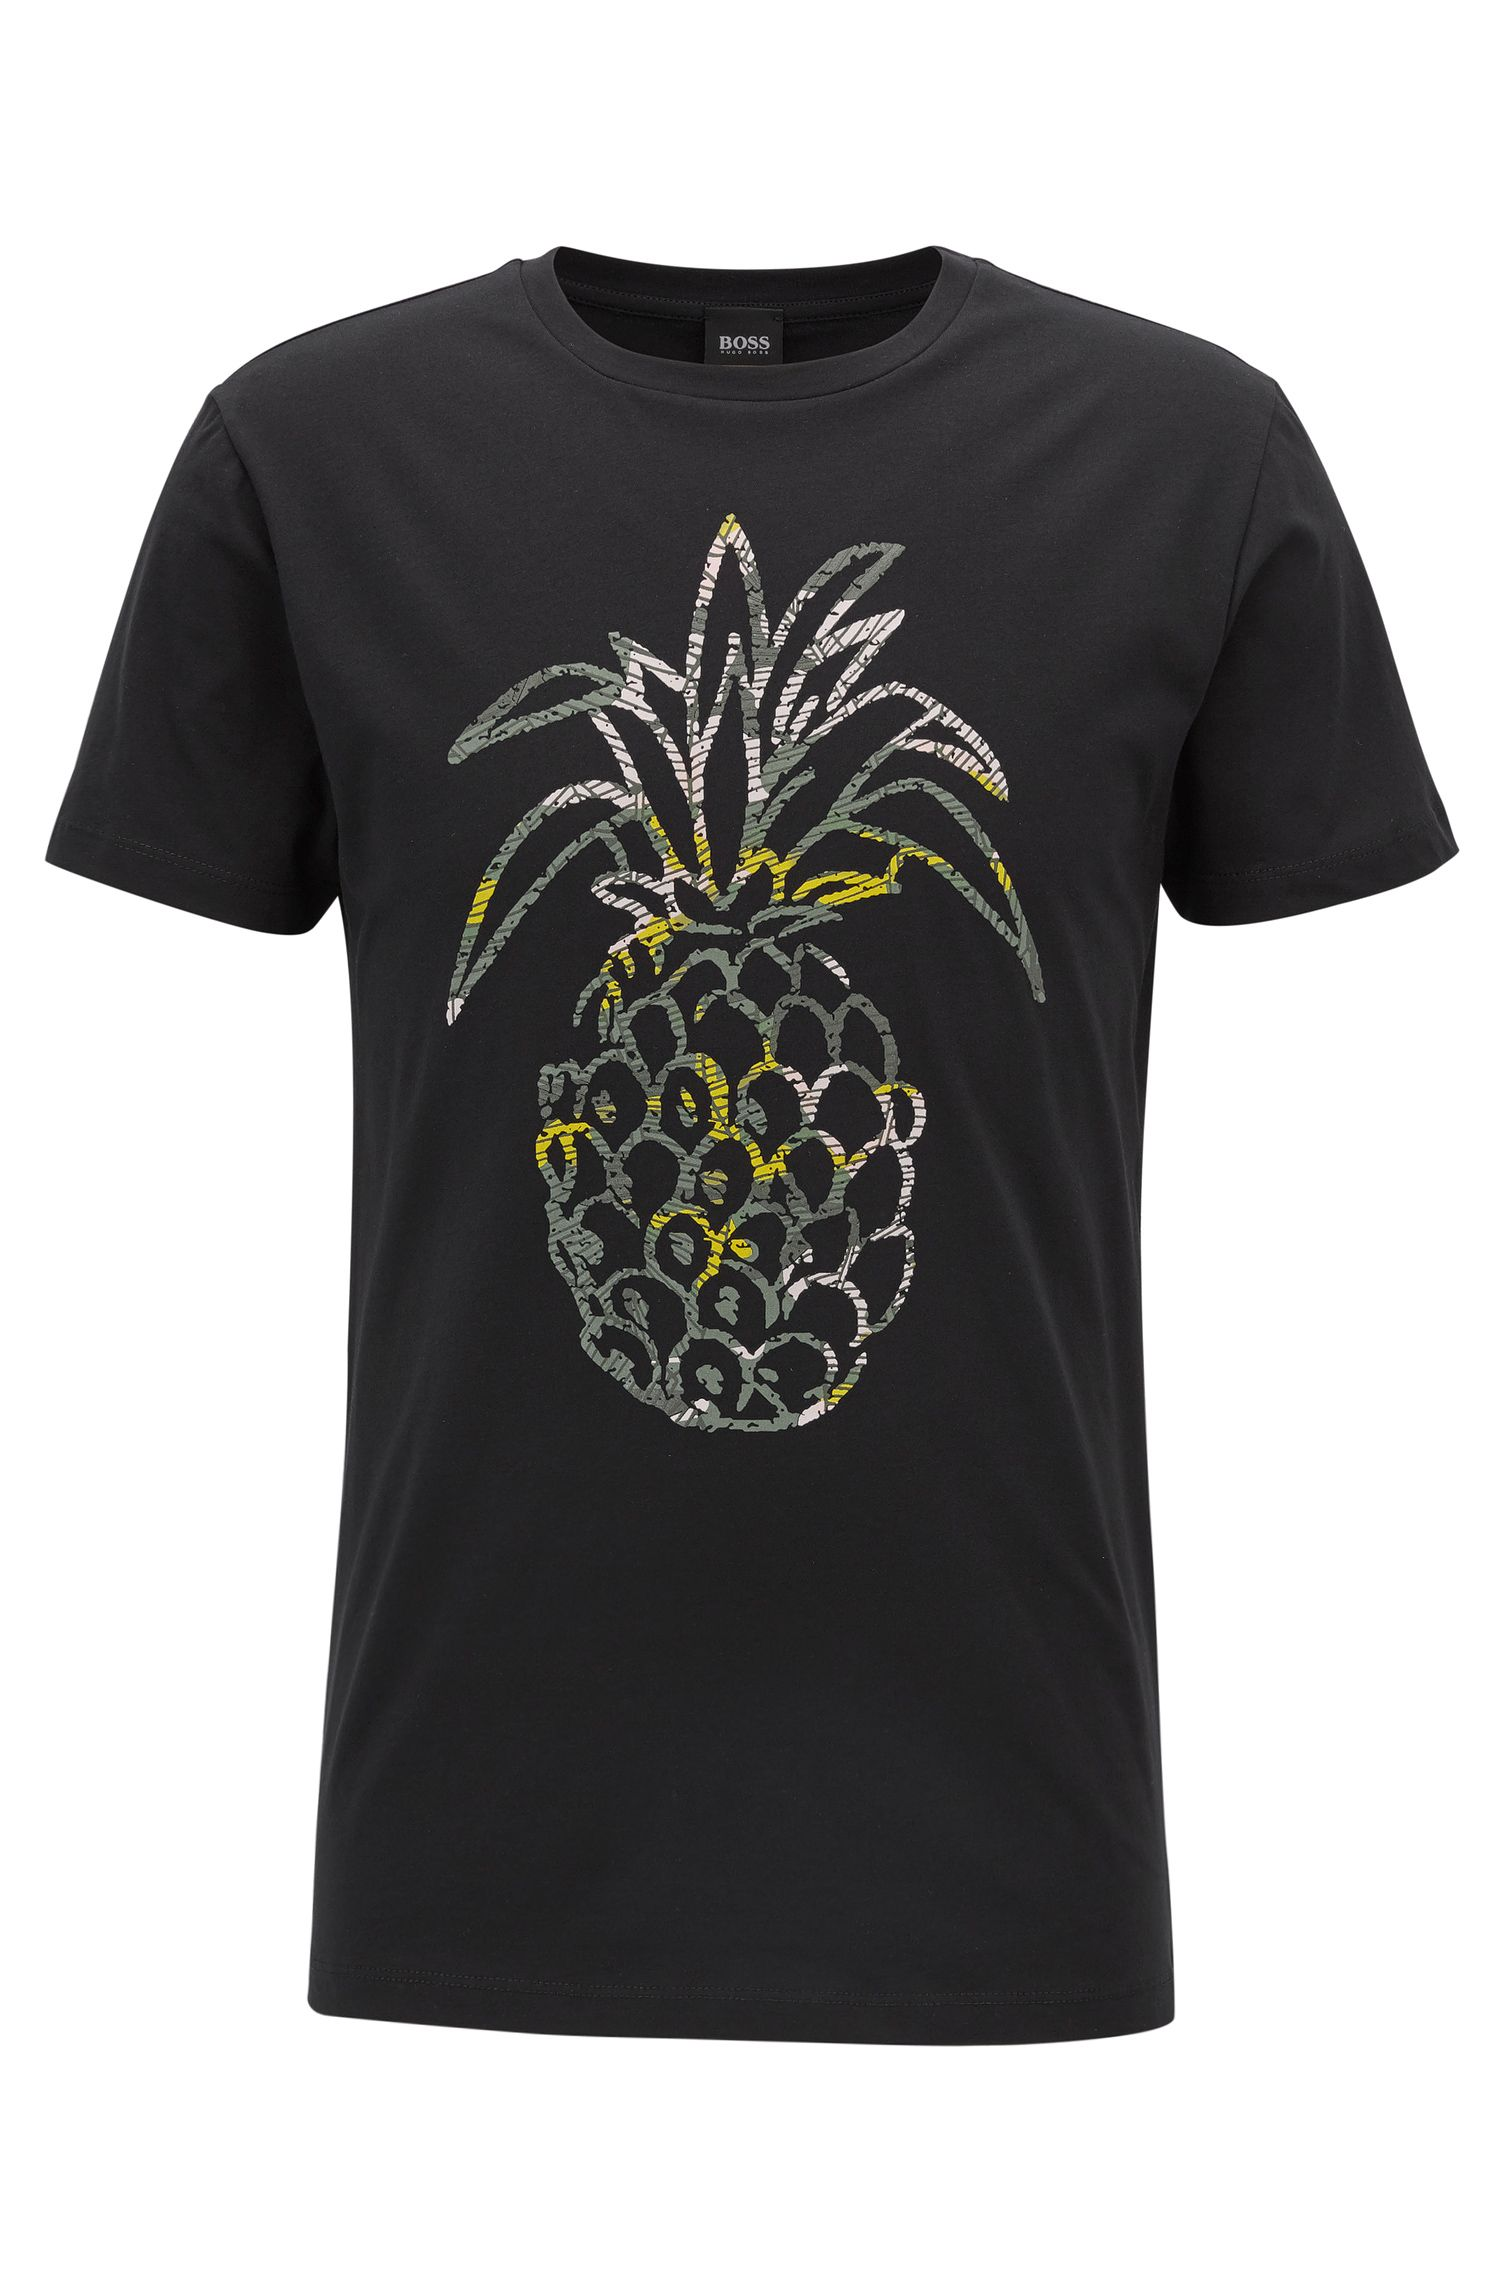 Regular-fit pineapple-print T-shirt in washed cotton jersey